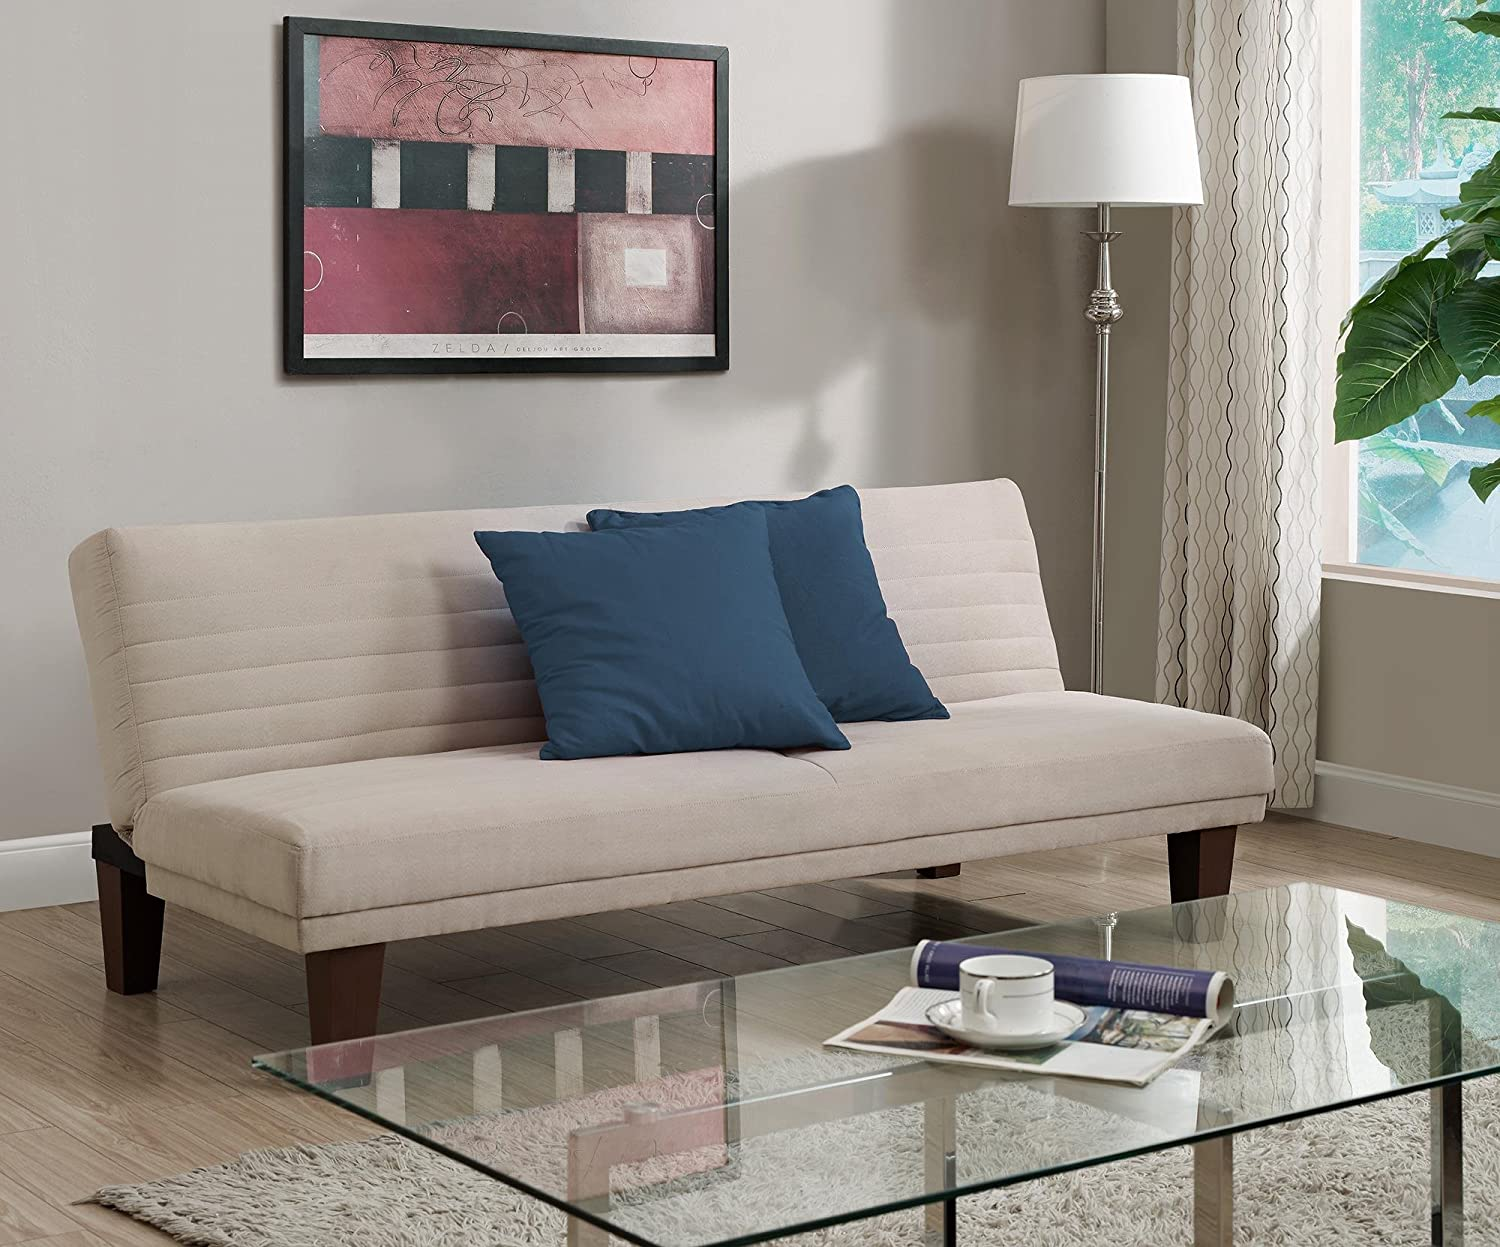 Amazon.com: DHP Dillan Convertible Futon Couch Bed With Microfiber  Upholstery And Wood Legs   Tan: Kitchen U0026 Dining